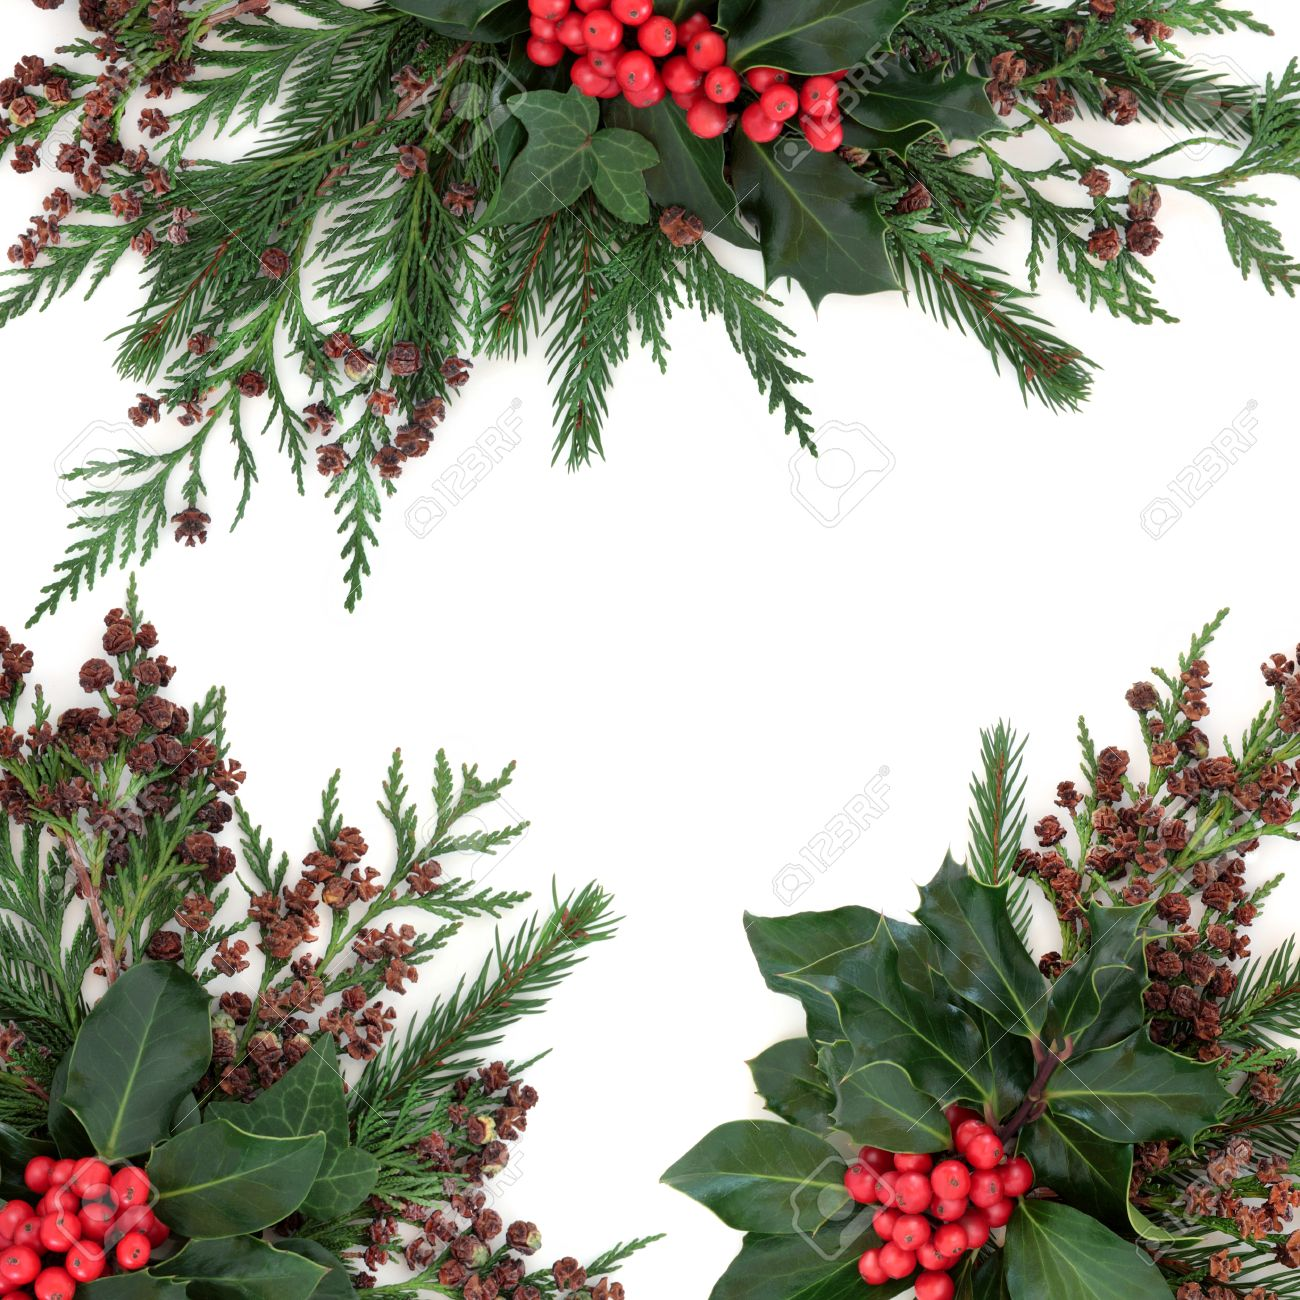 Christmas floral border stock photos freeimages com - Winter And Christmas Floral Border With Holly And Red Berries Ivy Fir And Cedar